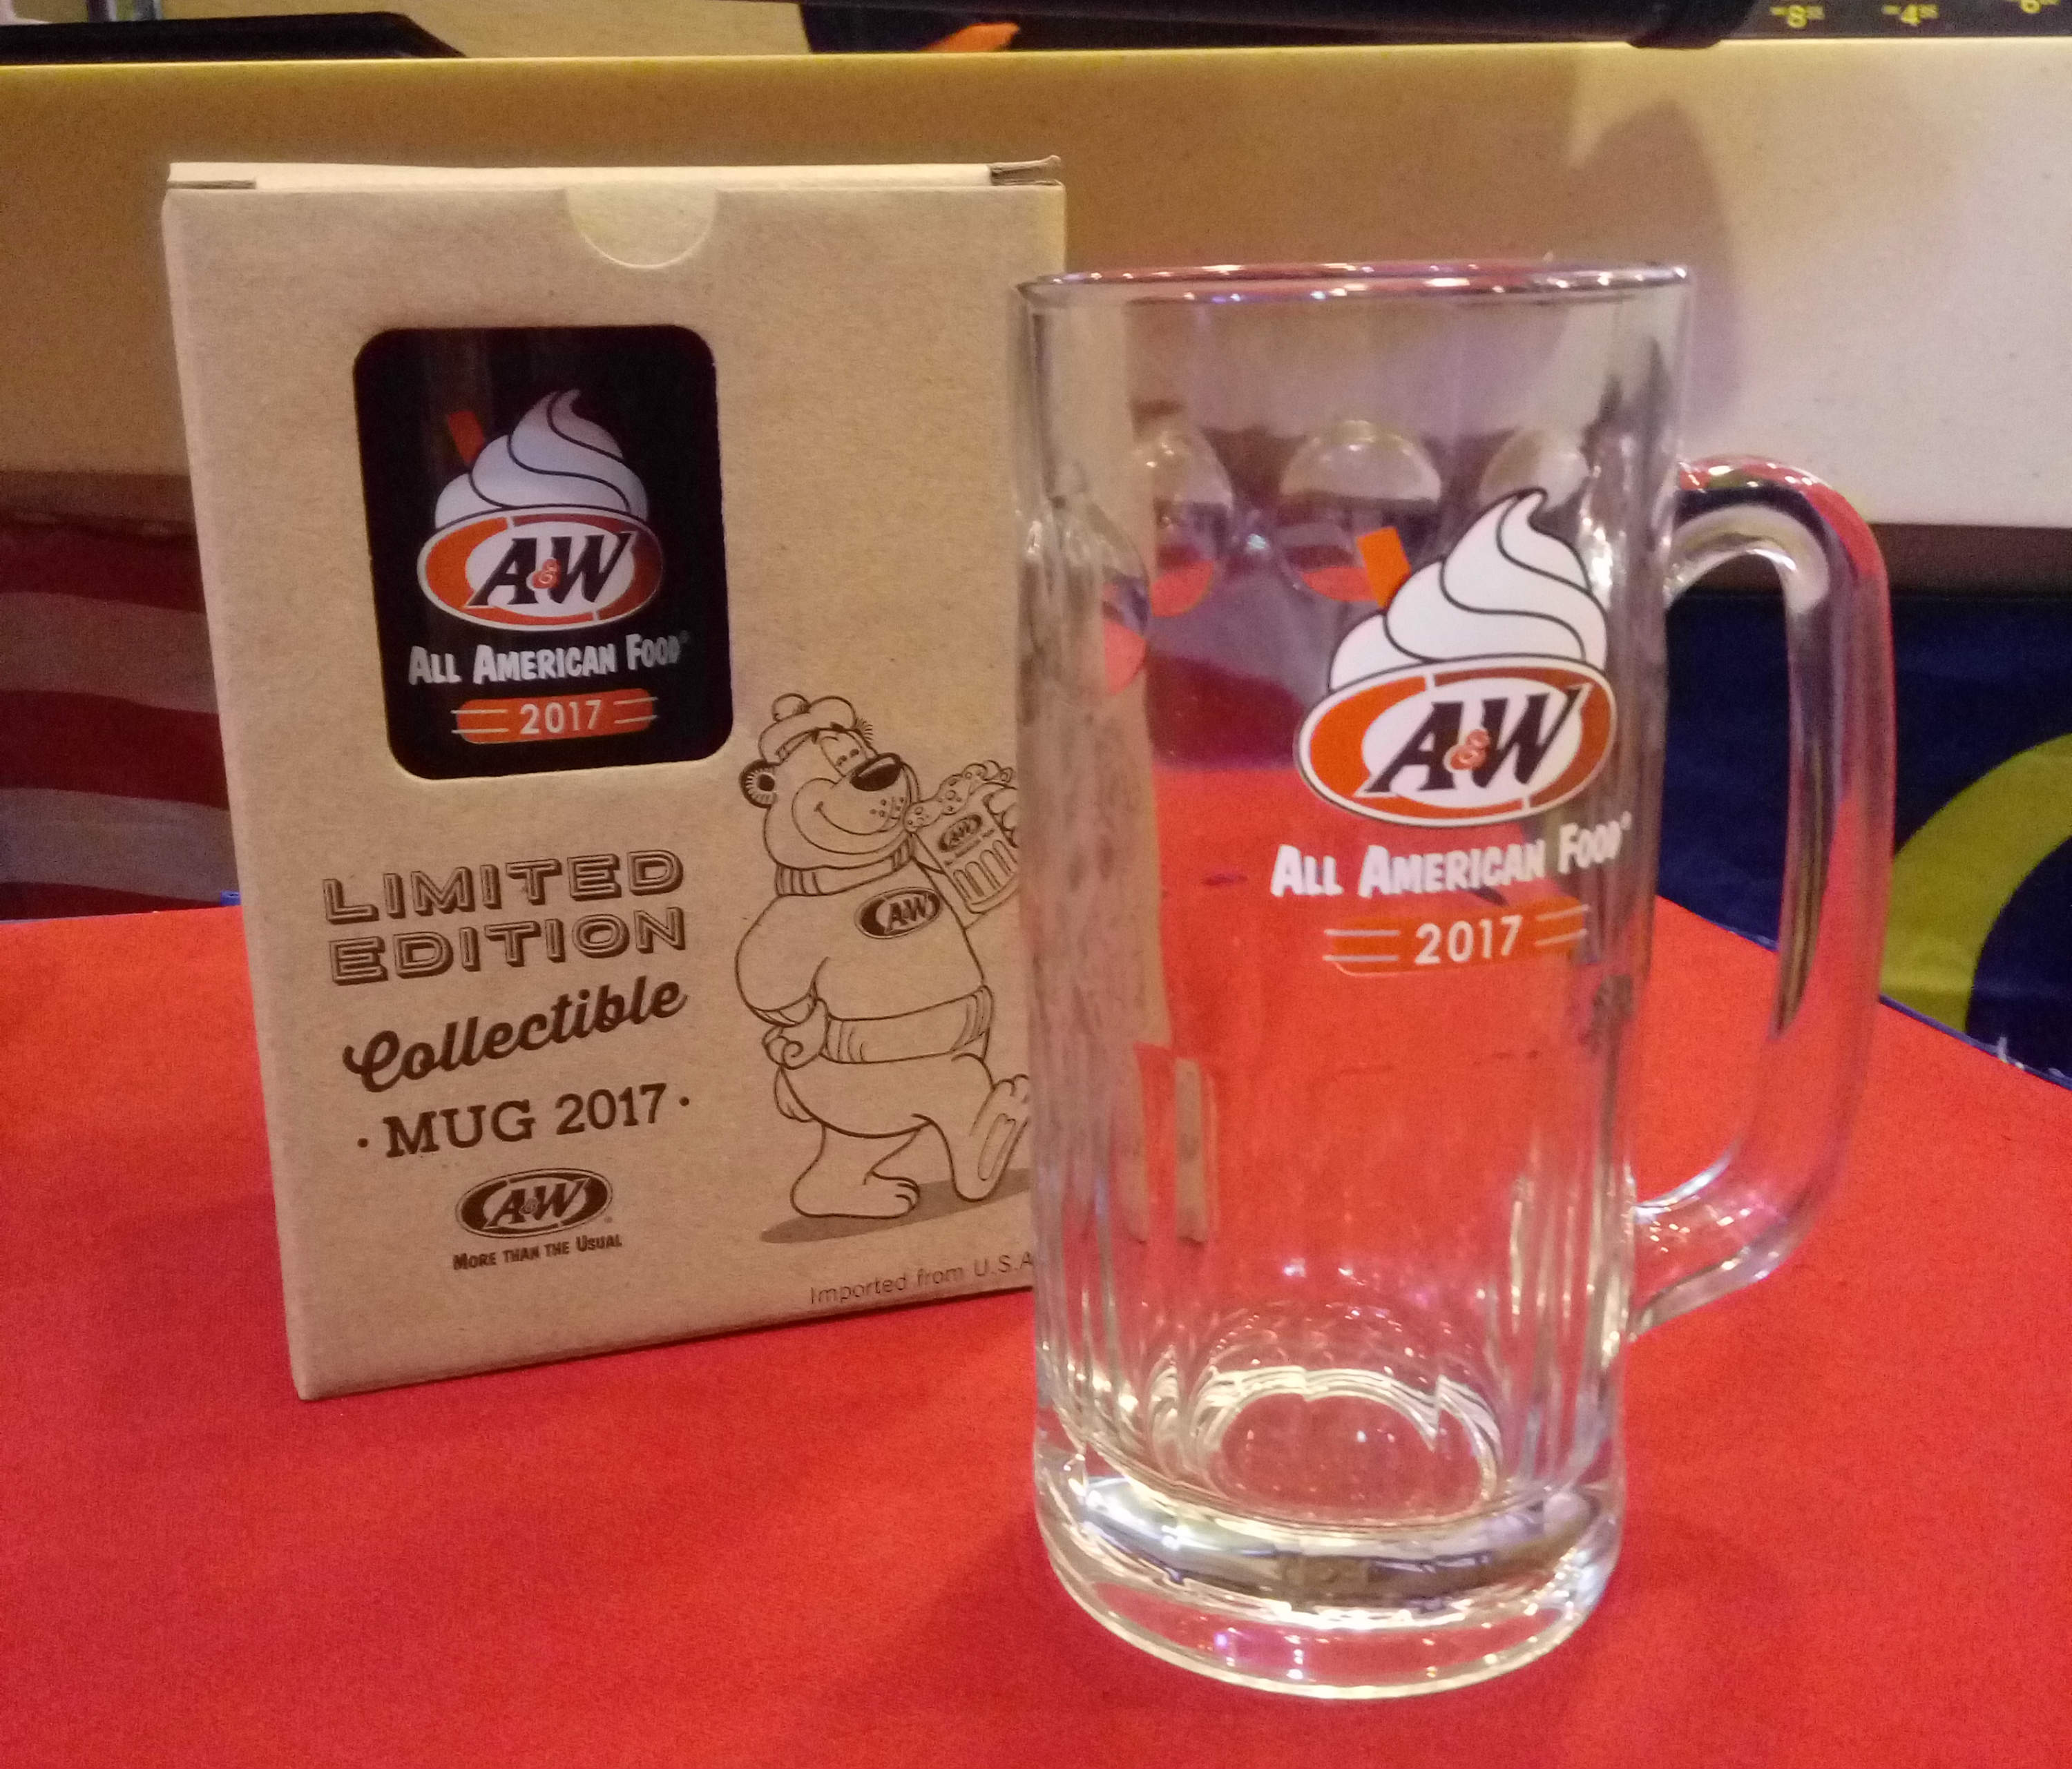 A&W Limited Edition 2017 Collectible Mug